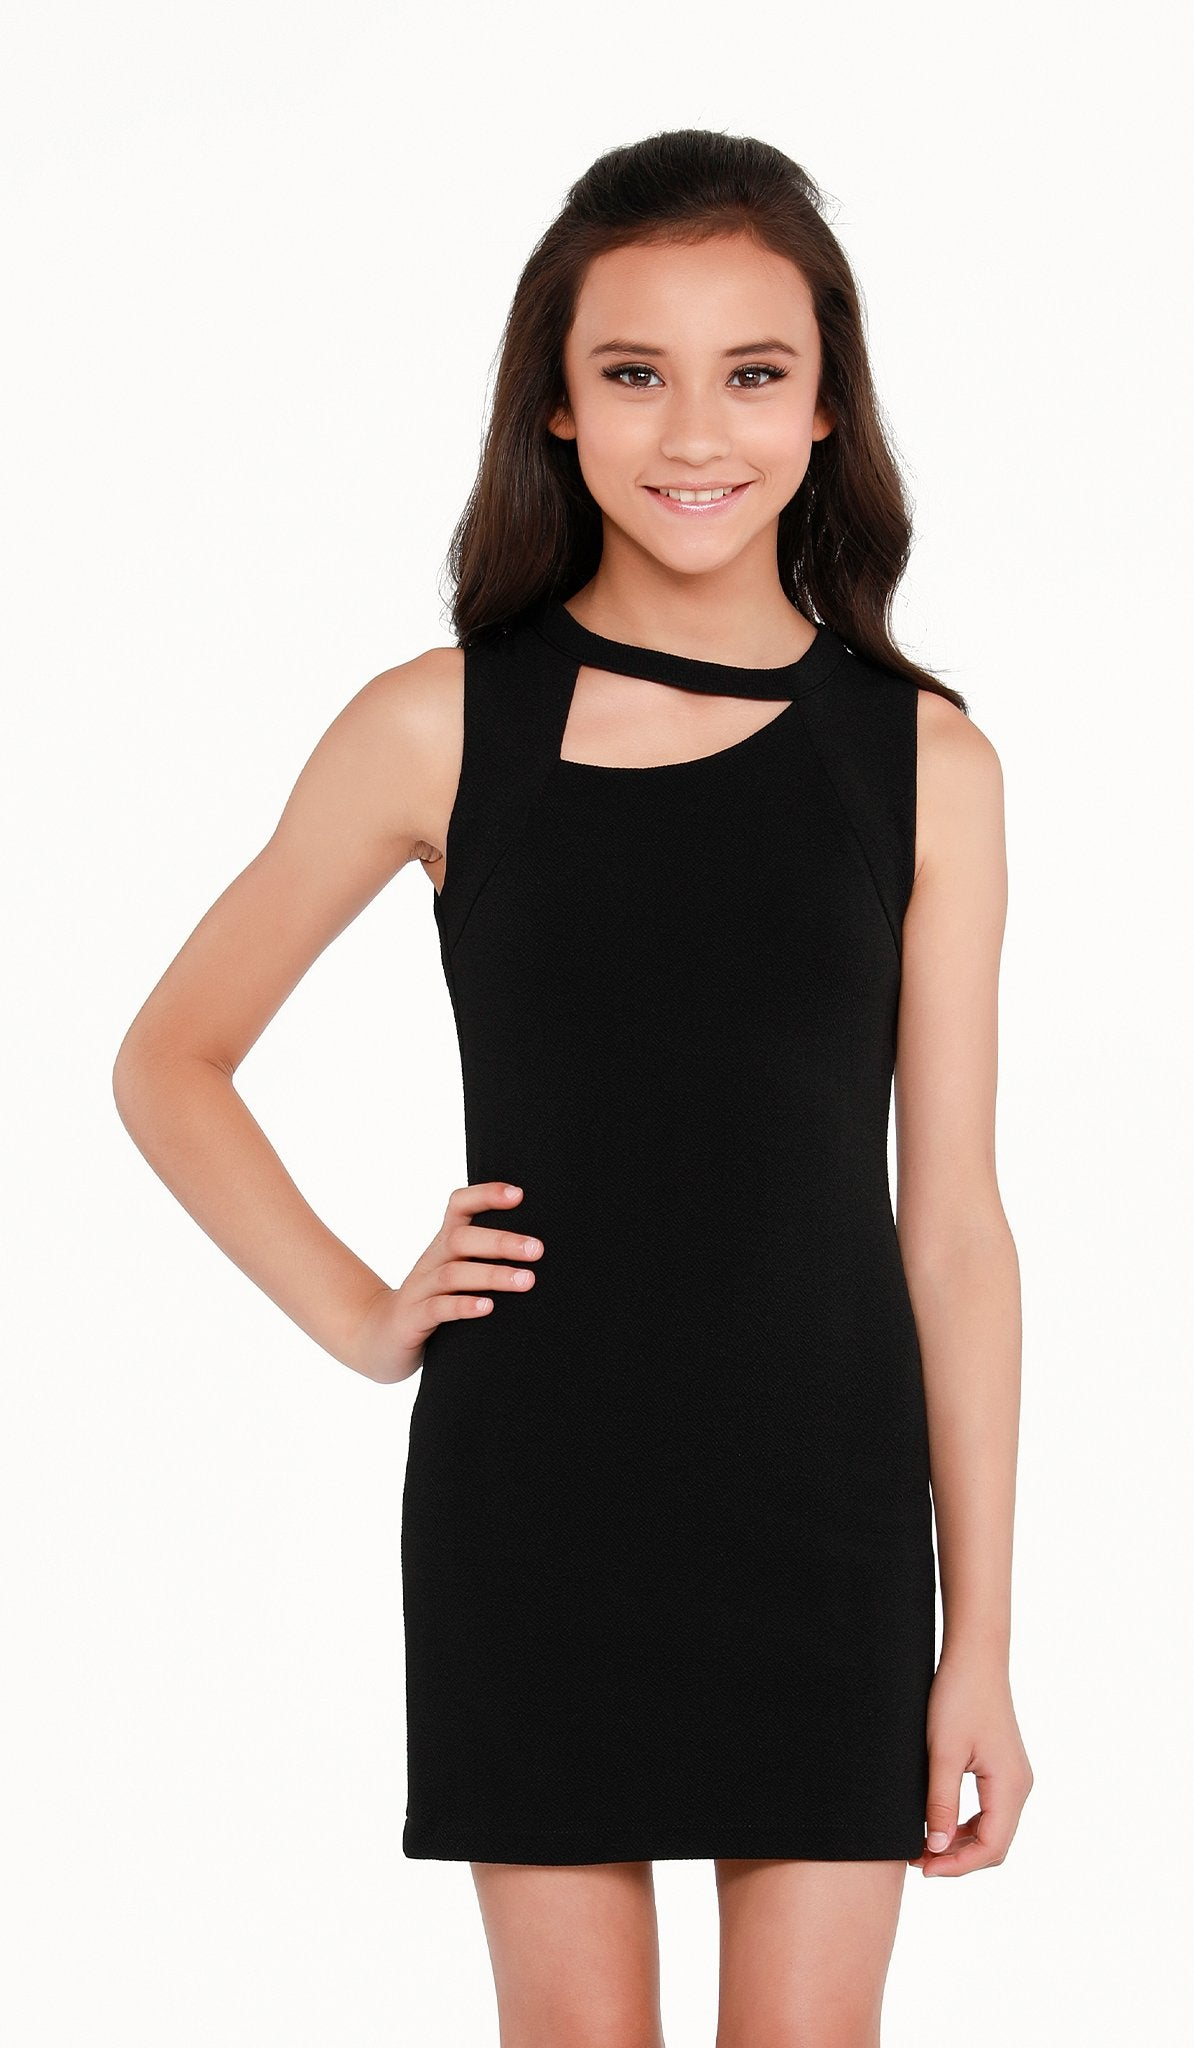 The Sally Miller Brittany Dress Black stretch textured knit bodycon dress with asymmetrical neckline and zipper at back